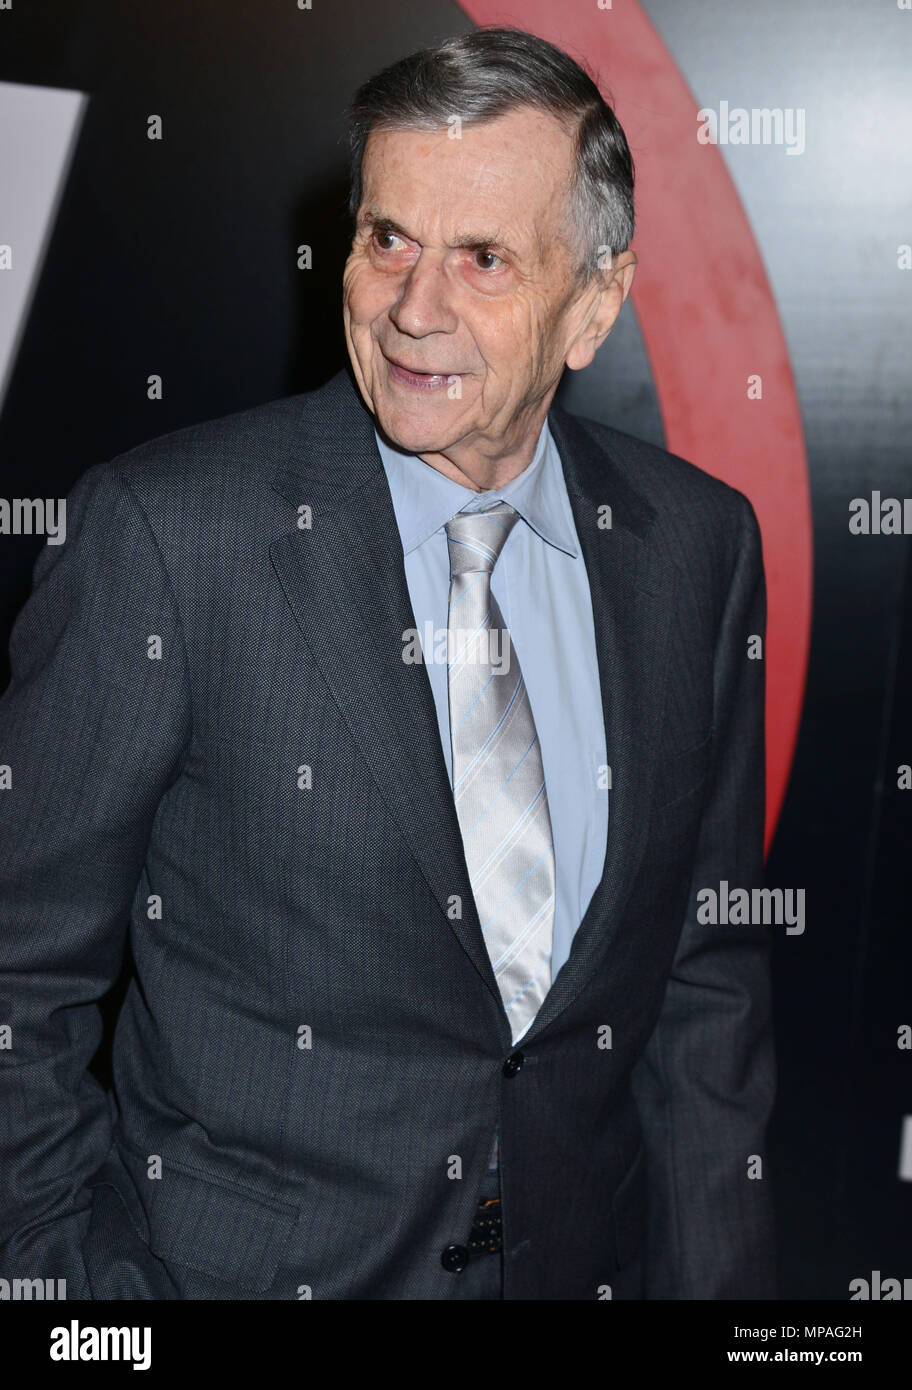 William B. Davis  at The X-Files Premiere at California Science Center in Los Angeles, CA  January 12, 2016.William B. Davis ------------- Red Carpet Event, Vertical, USA, Film Industry, Celebrities,  Photography, Bestof, Arts Culture and Entertainment, Topix Celebrities fashion /  Vertical, Best of, Event in Hollywood Life - California,  Red Carpet and backstage, USA, Film Industry, Celebrities,  movie celebrities, TV celebrities, Music celebrities, Photography, Bestof, Arts Culture and Entertainment,  Topix, Three Quarters, vertical, one person,, from the year , 2016, inquiry tsuni@Gamma-USA - Stock Image